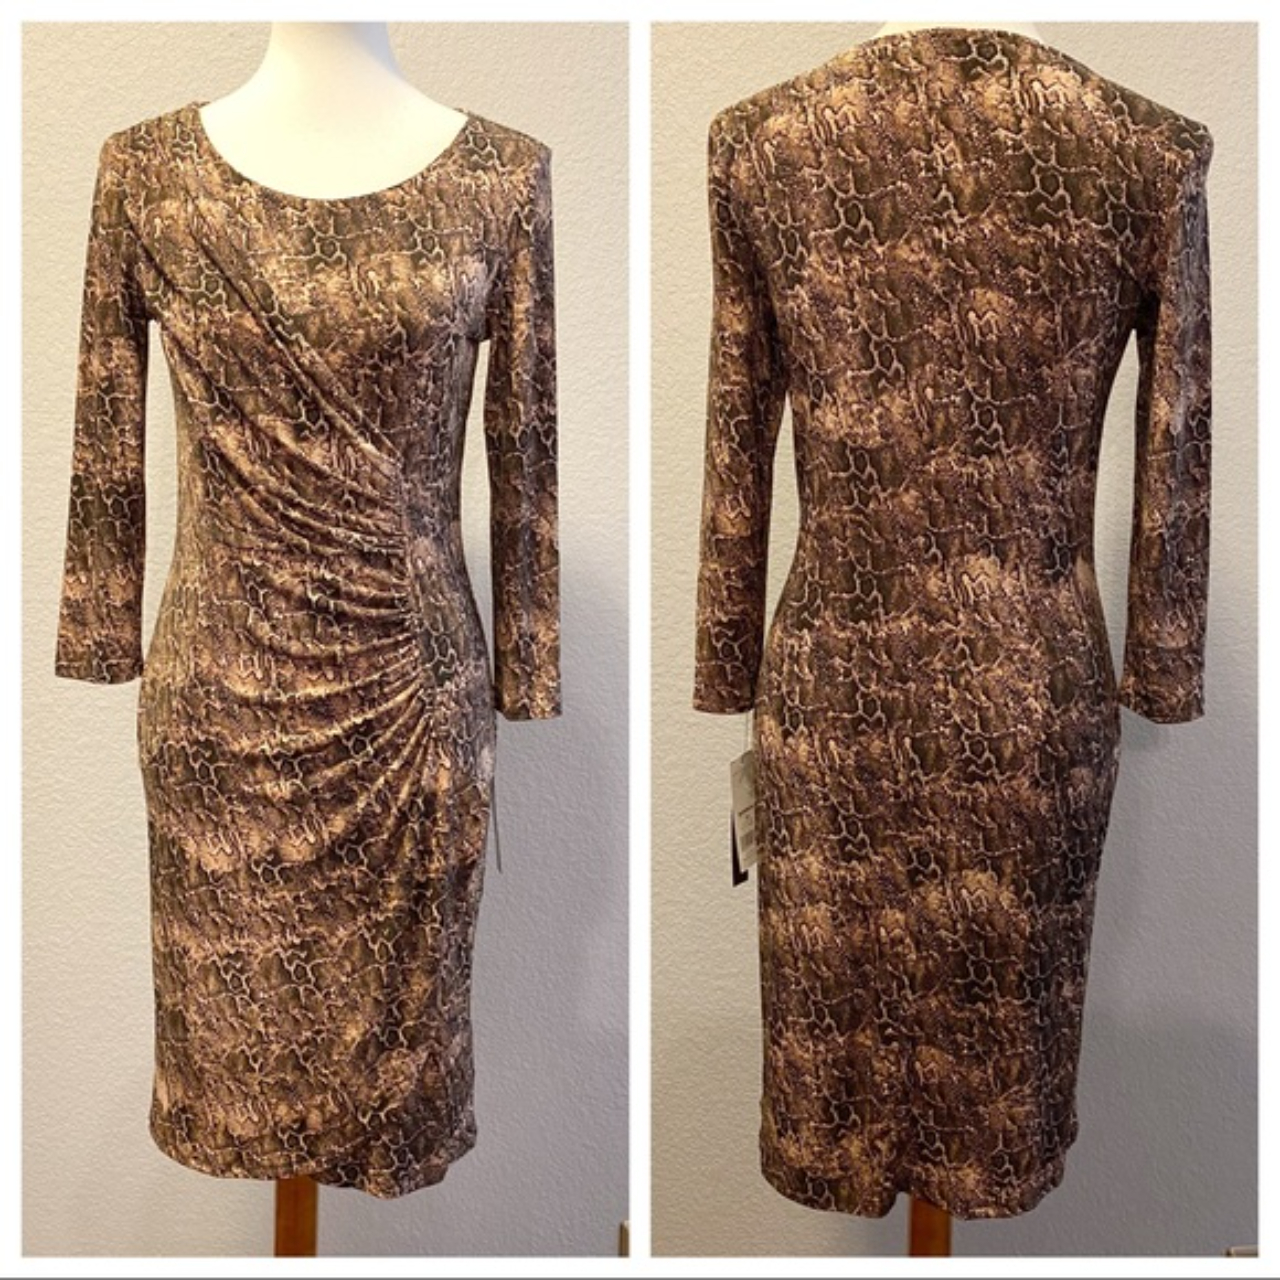 Product Image 1 - Brown snakeskin print dress by